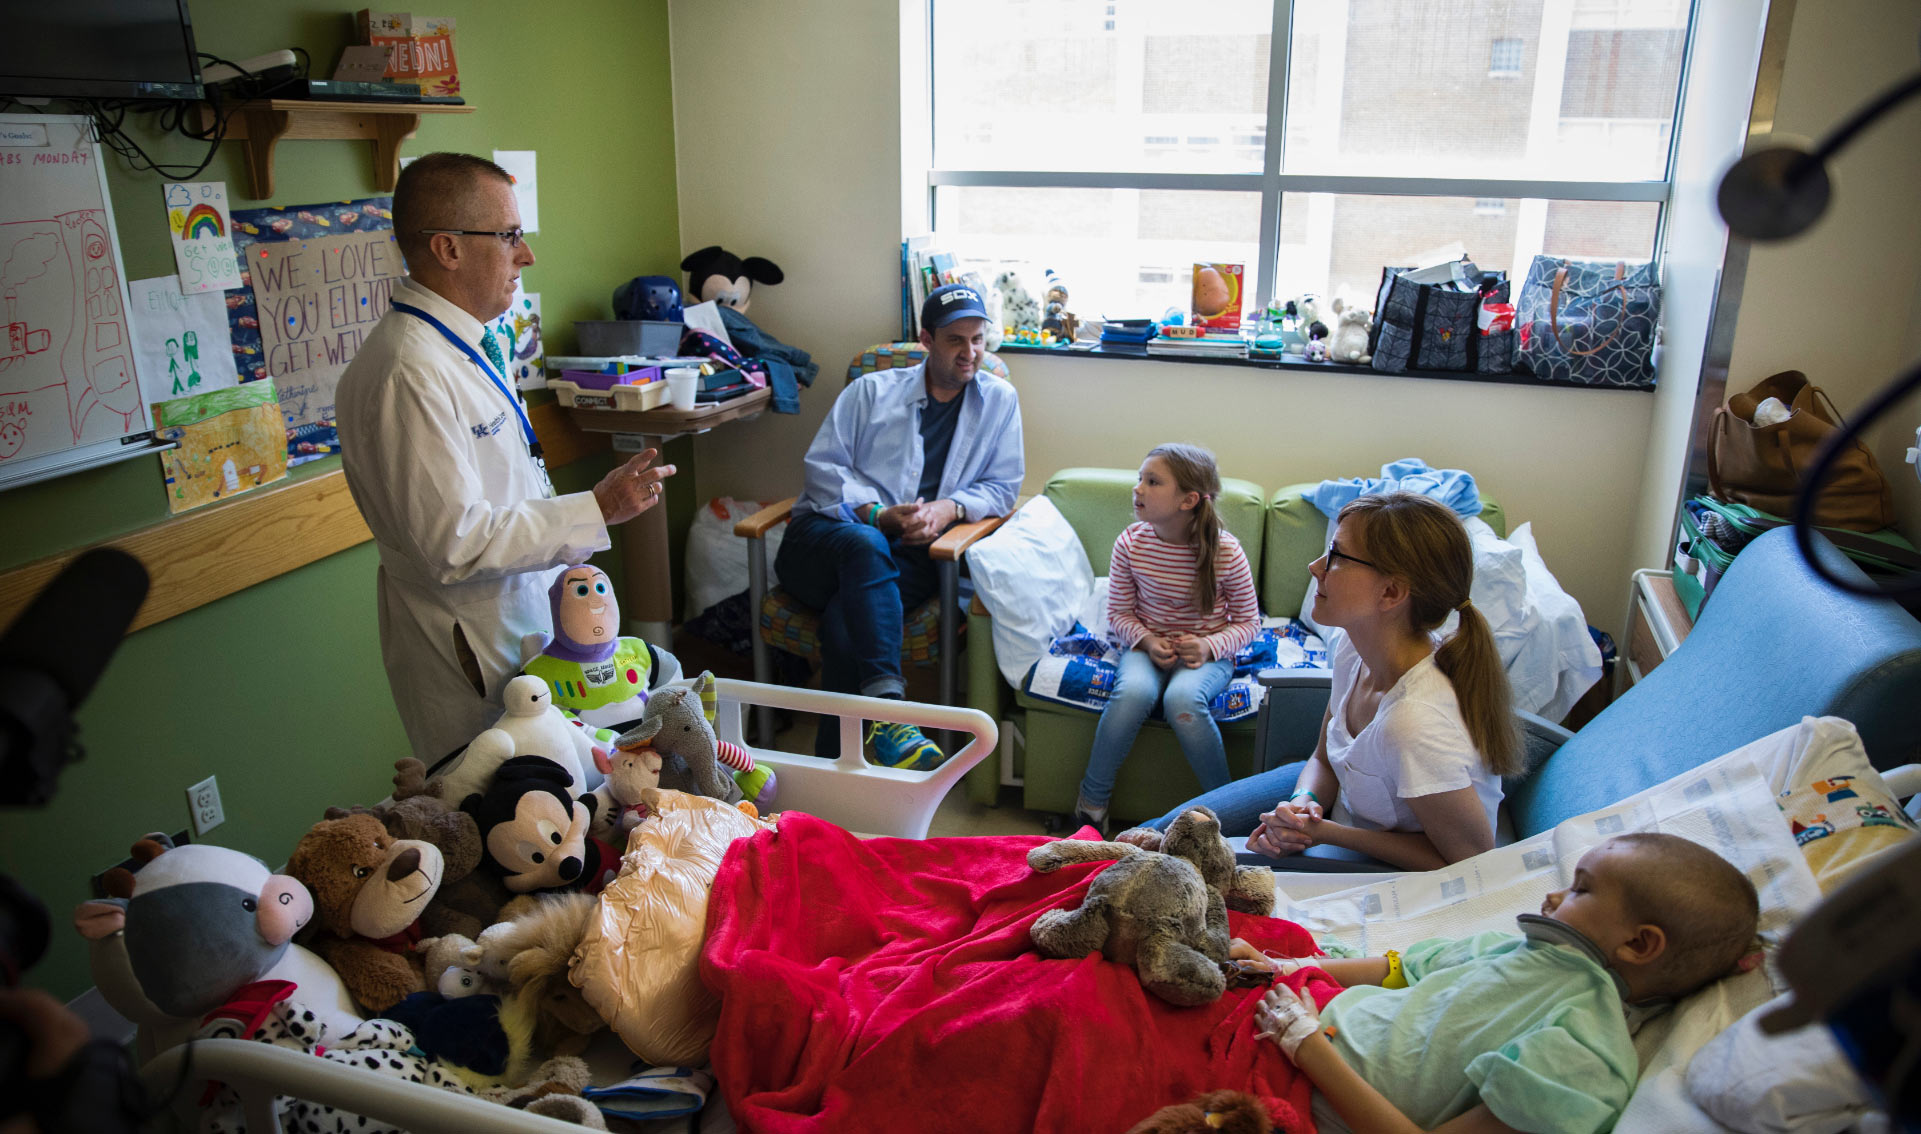 Dr. Day stands in a young patient's room speaking to their family—the room is filled with posters, drawings, toys and stuffed animals.